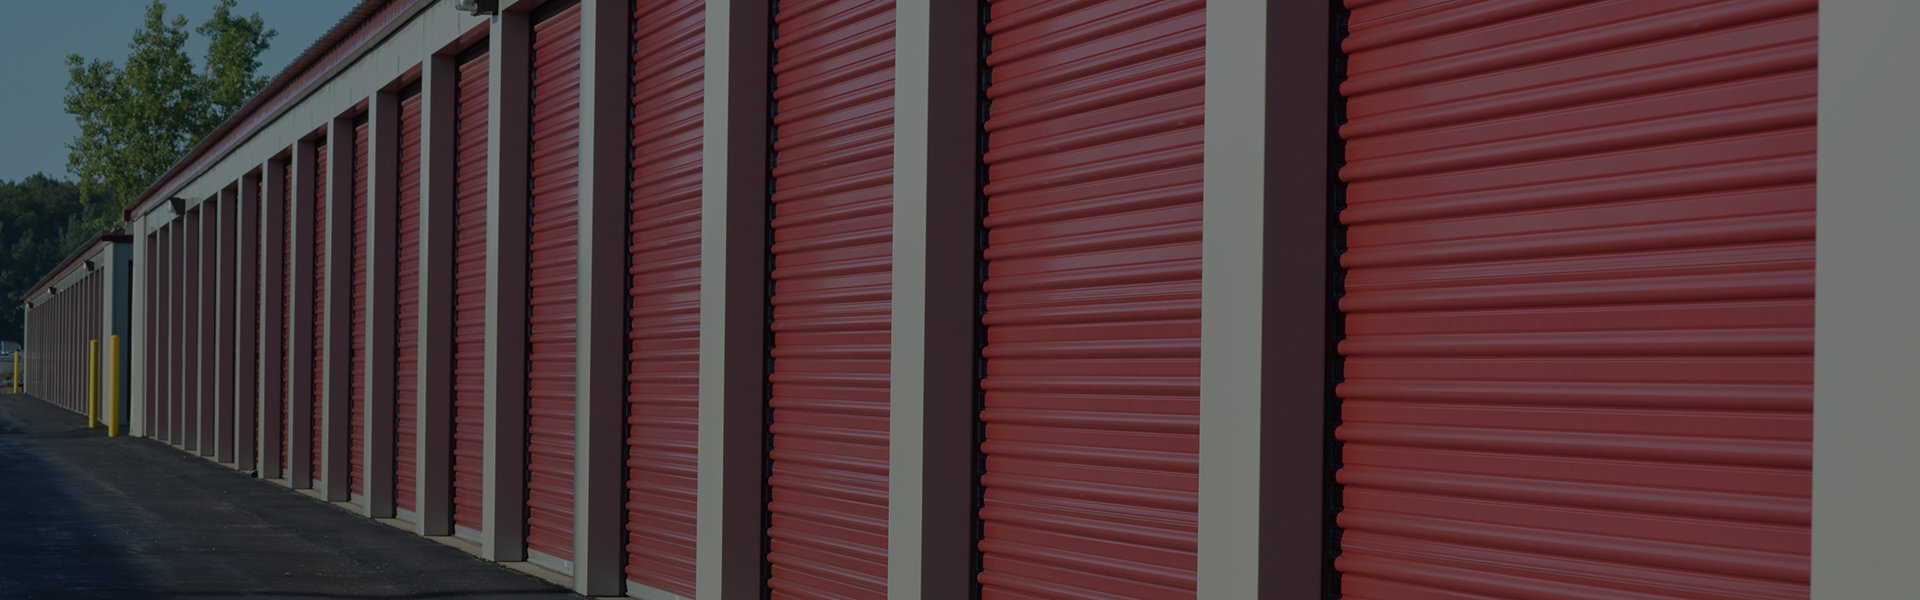 closed storage spaces with red shutters